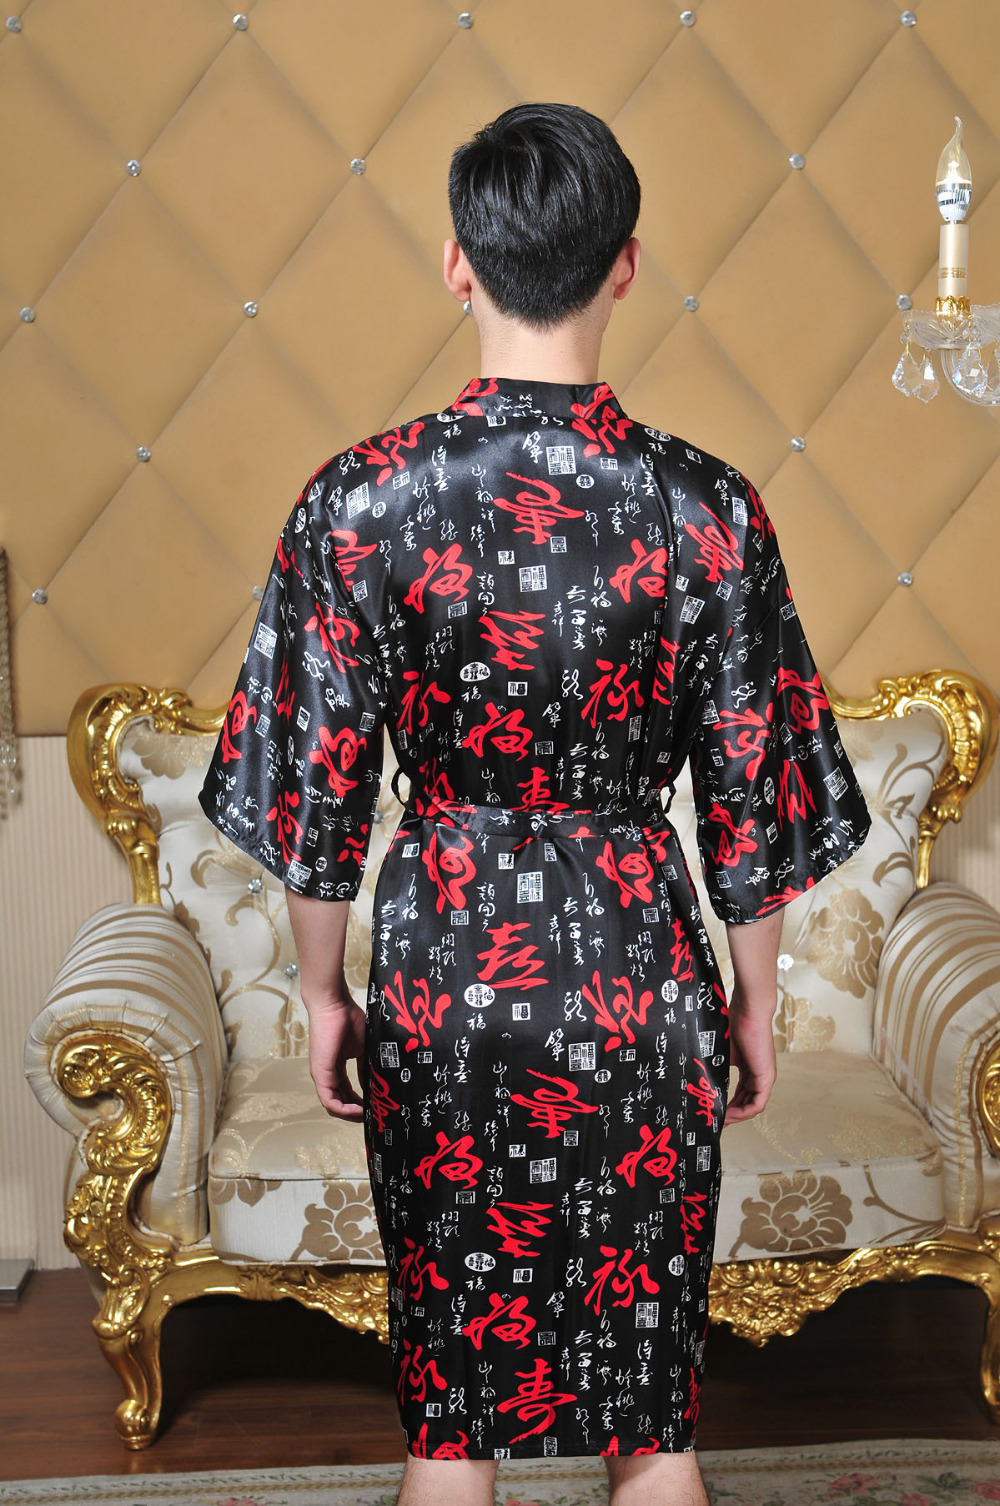 Da Flor do Estilo Chinês Sleepwear Intimate